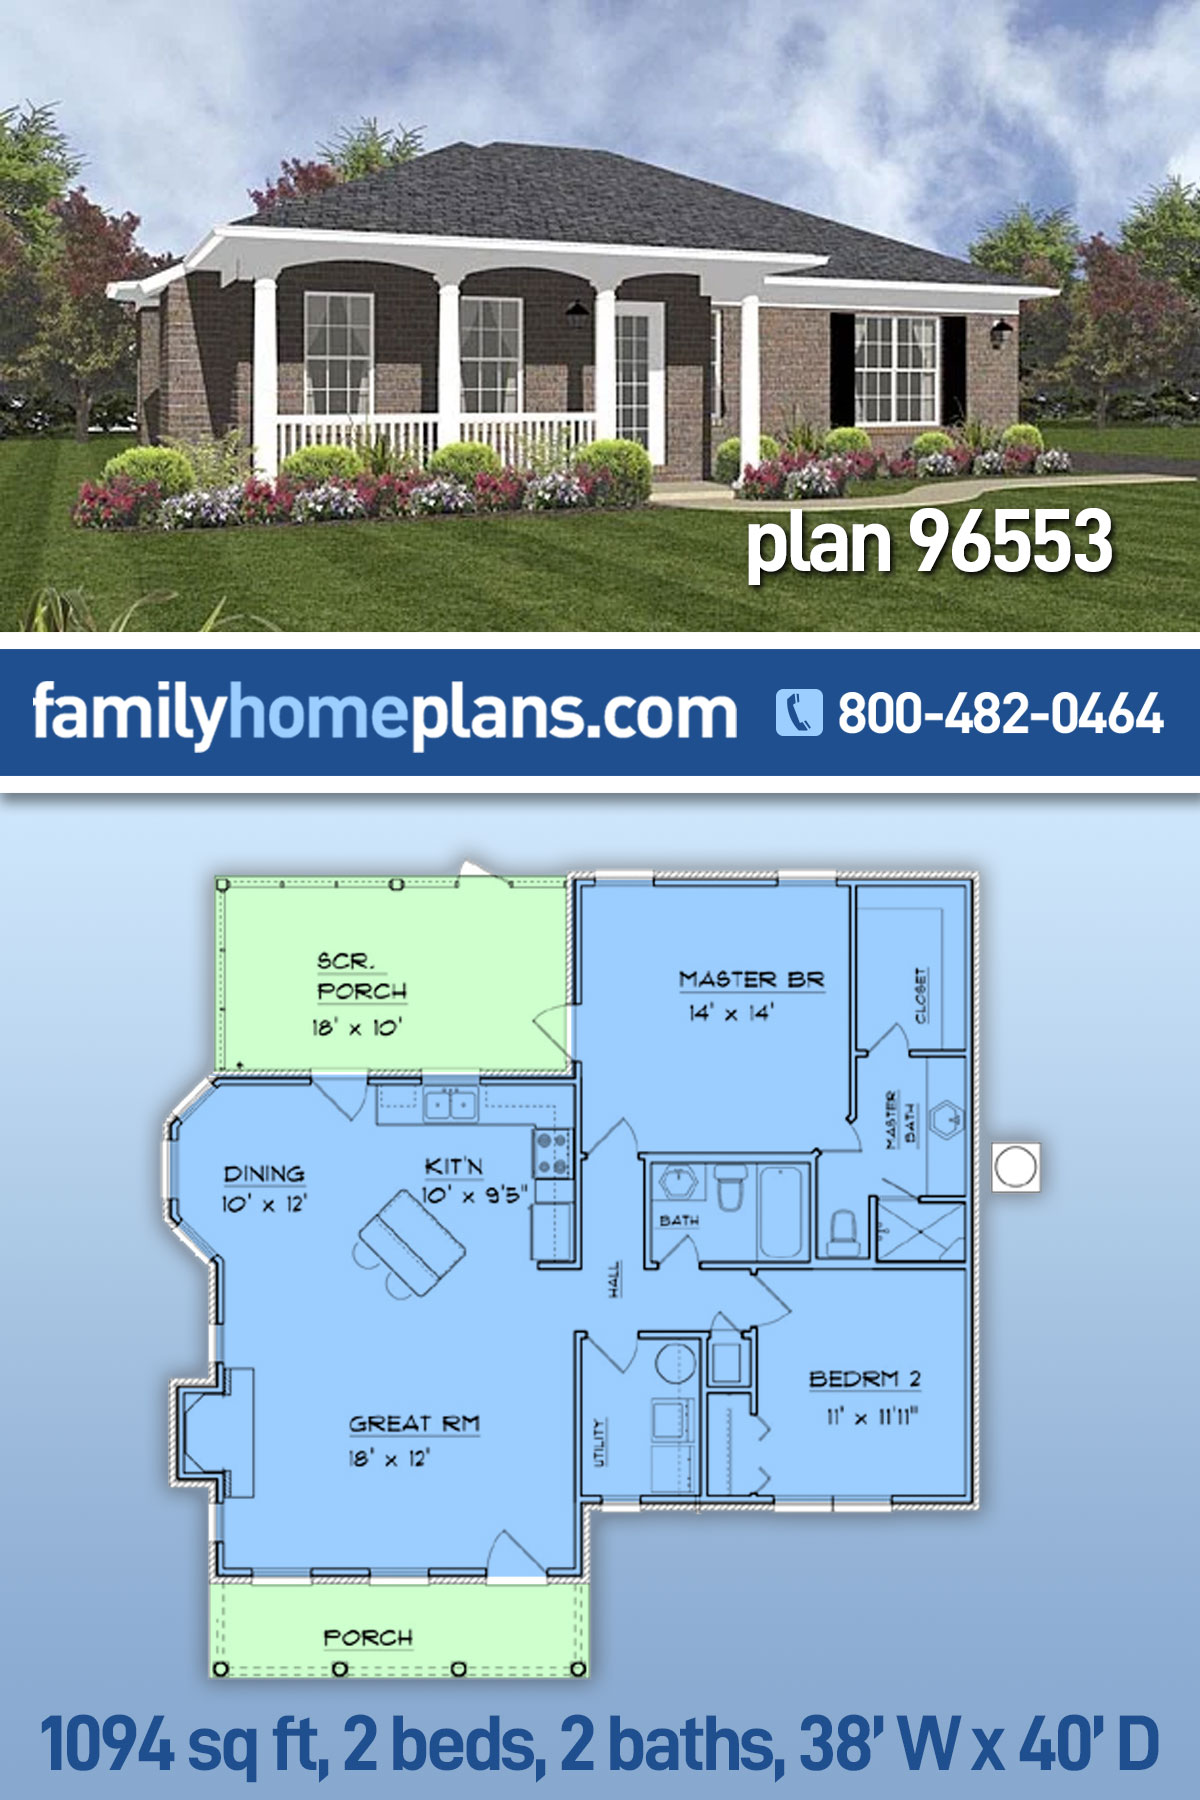 Traditional House Plan 96553 with 2 Beds, 2 Baths